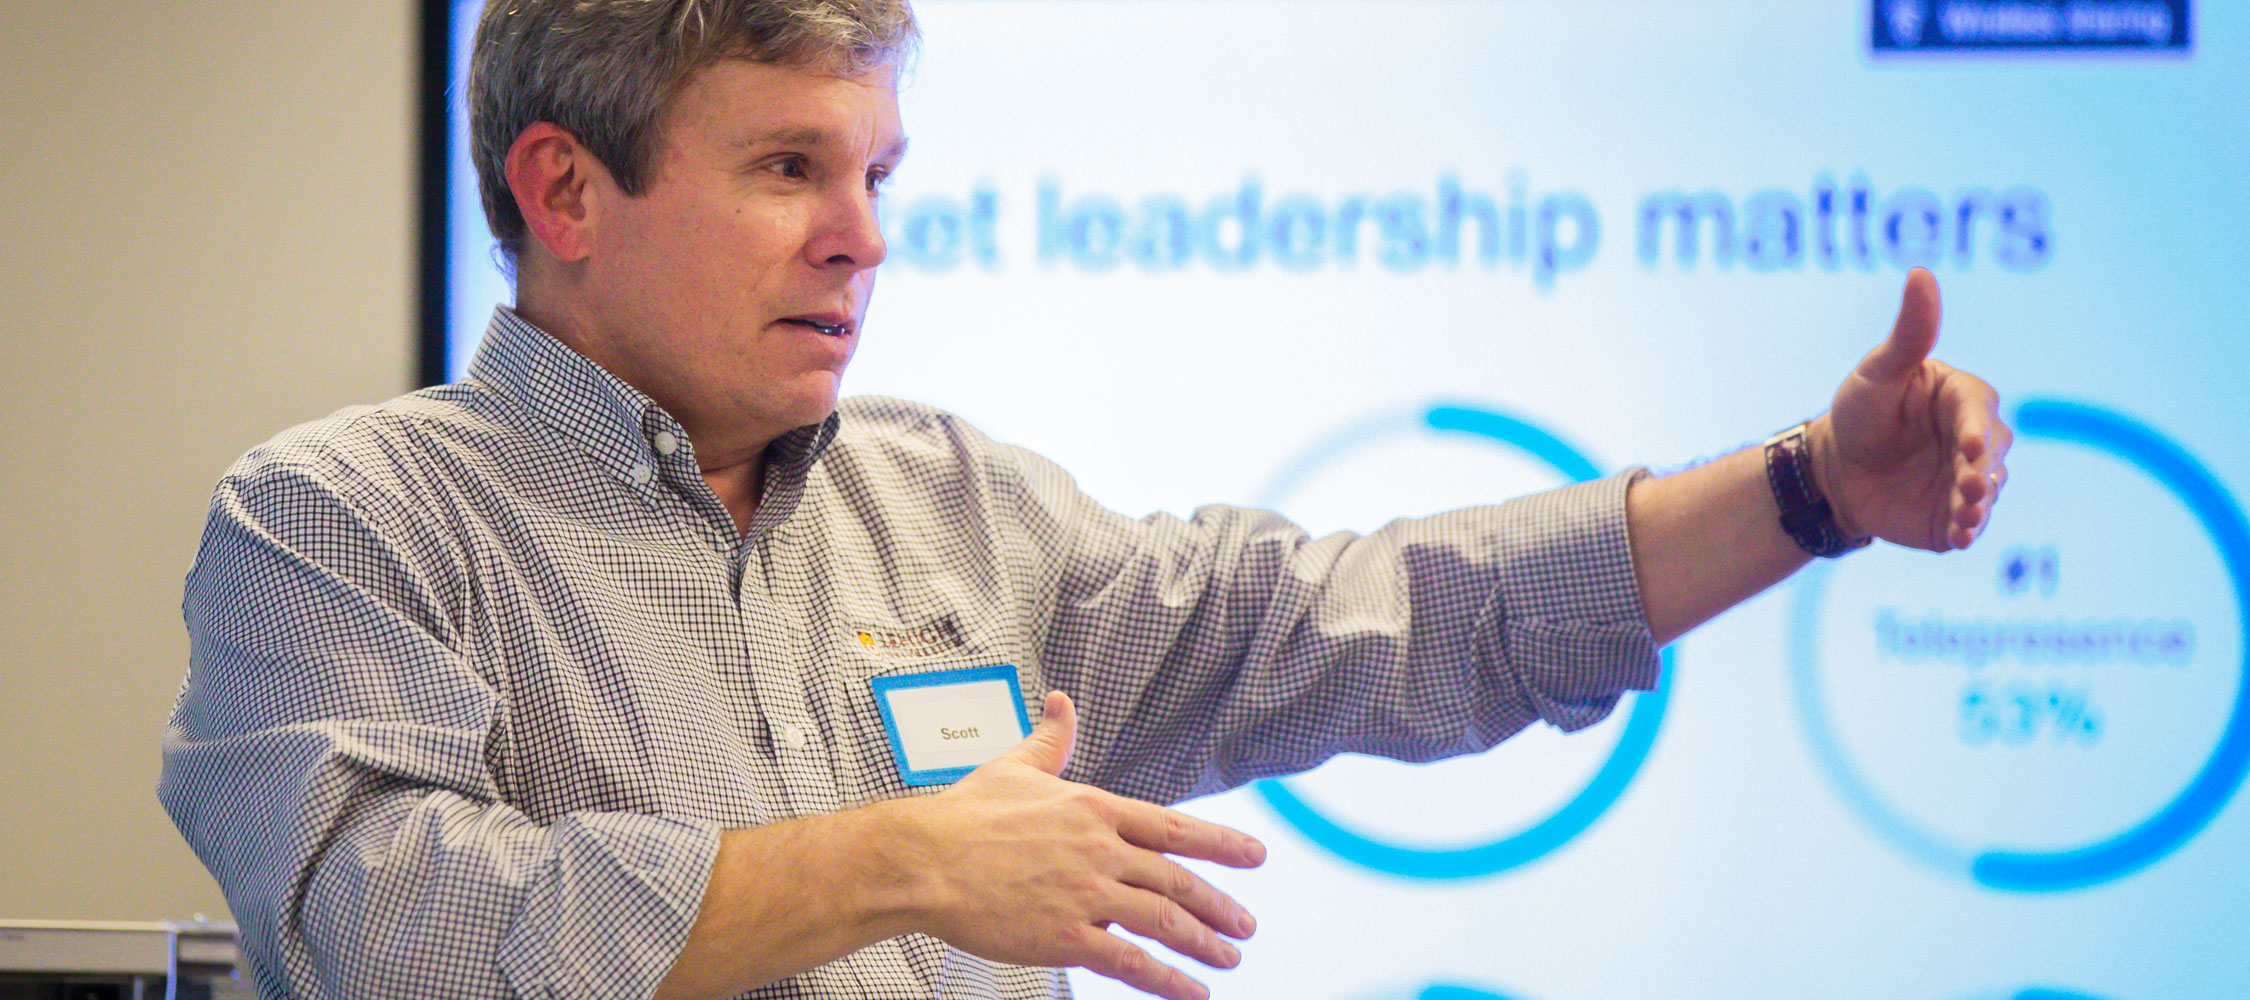 Scott Scheeler '86, Vice President Of Switching Hardware At Cisco Systems,  Told Students There Are Advantages To Working At Both Startups And  Established